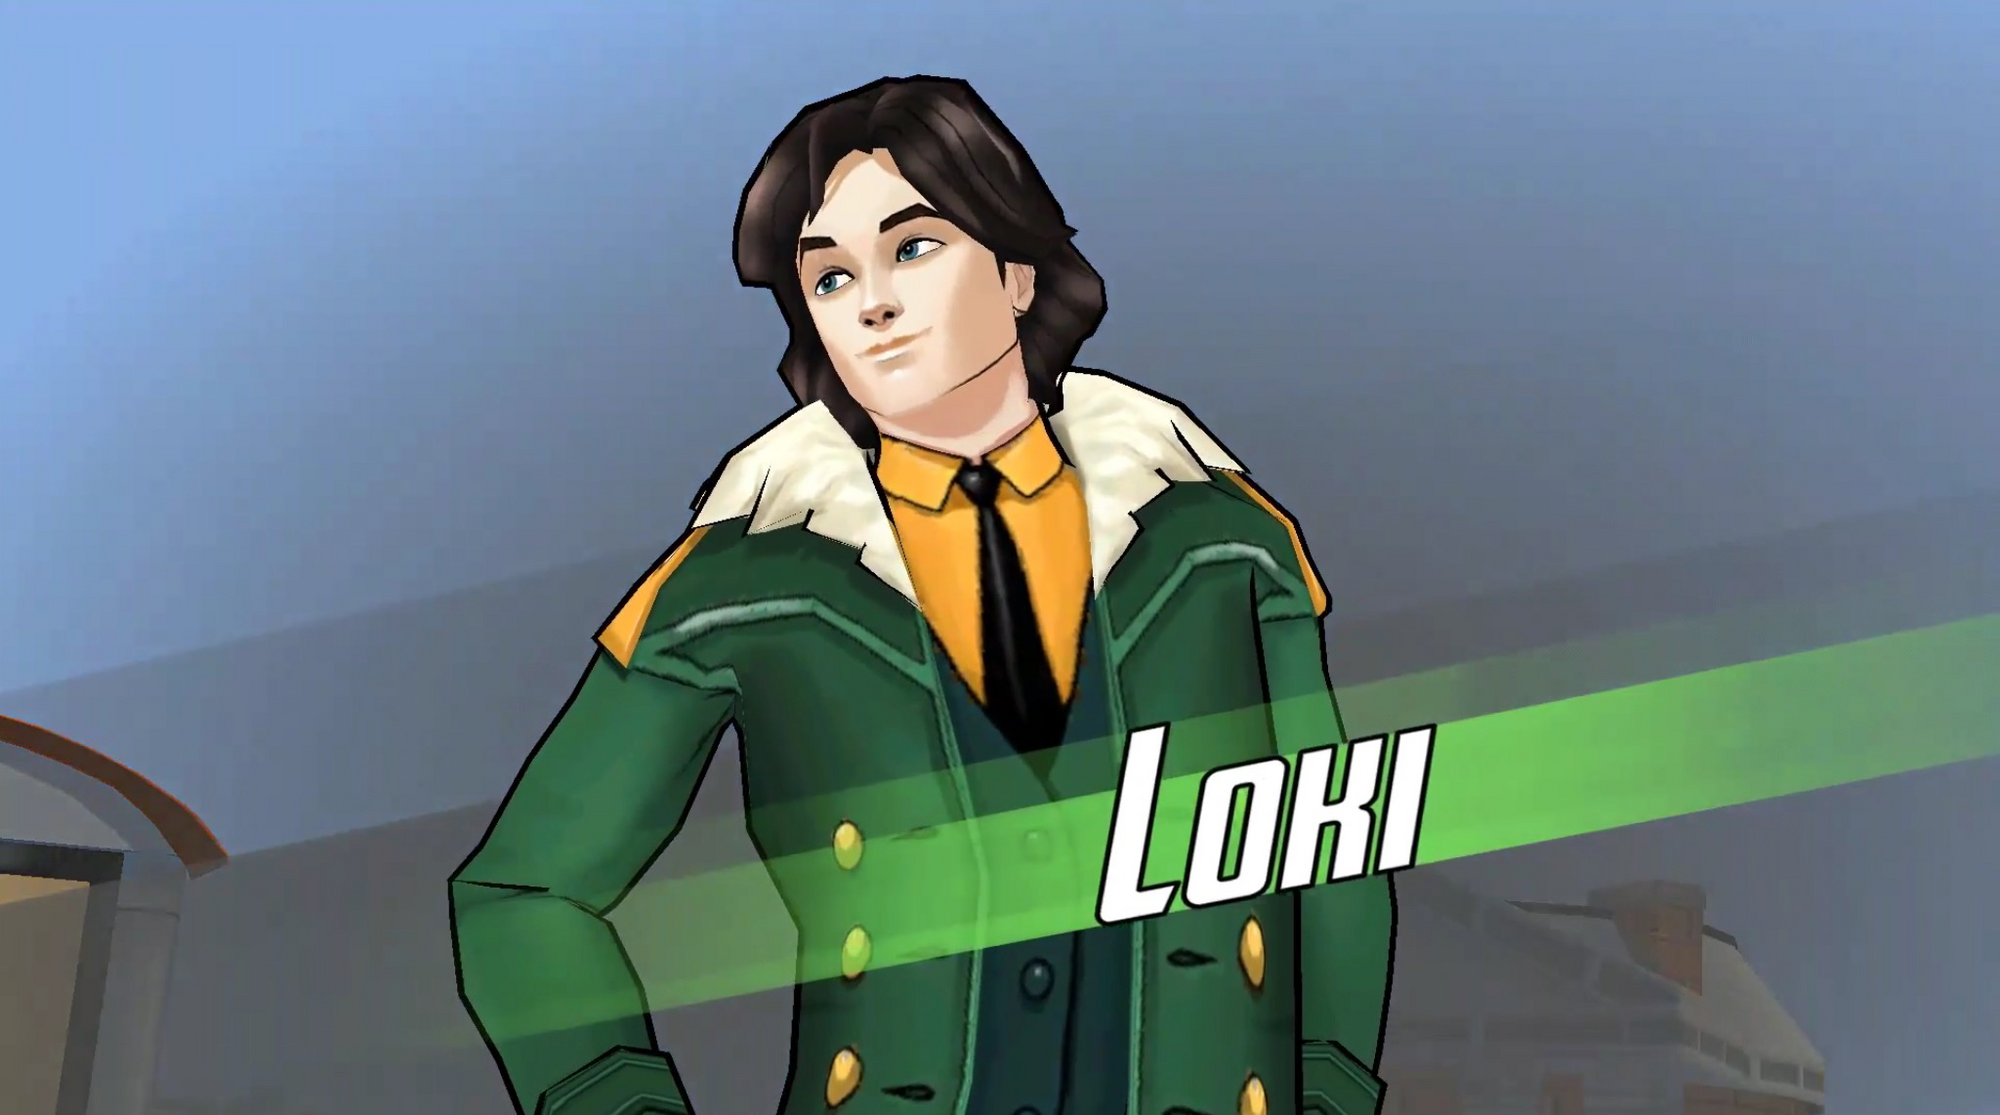 Loki | Avengers Academy Wikia | FANDOM powered by Wikia